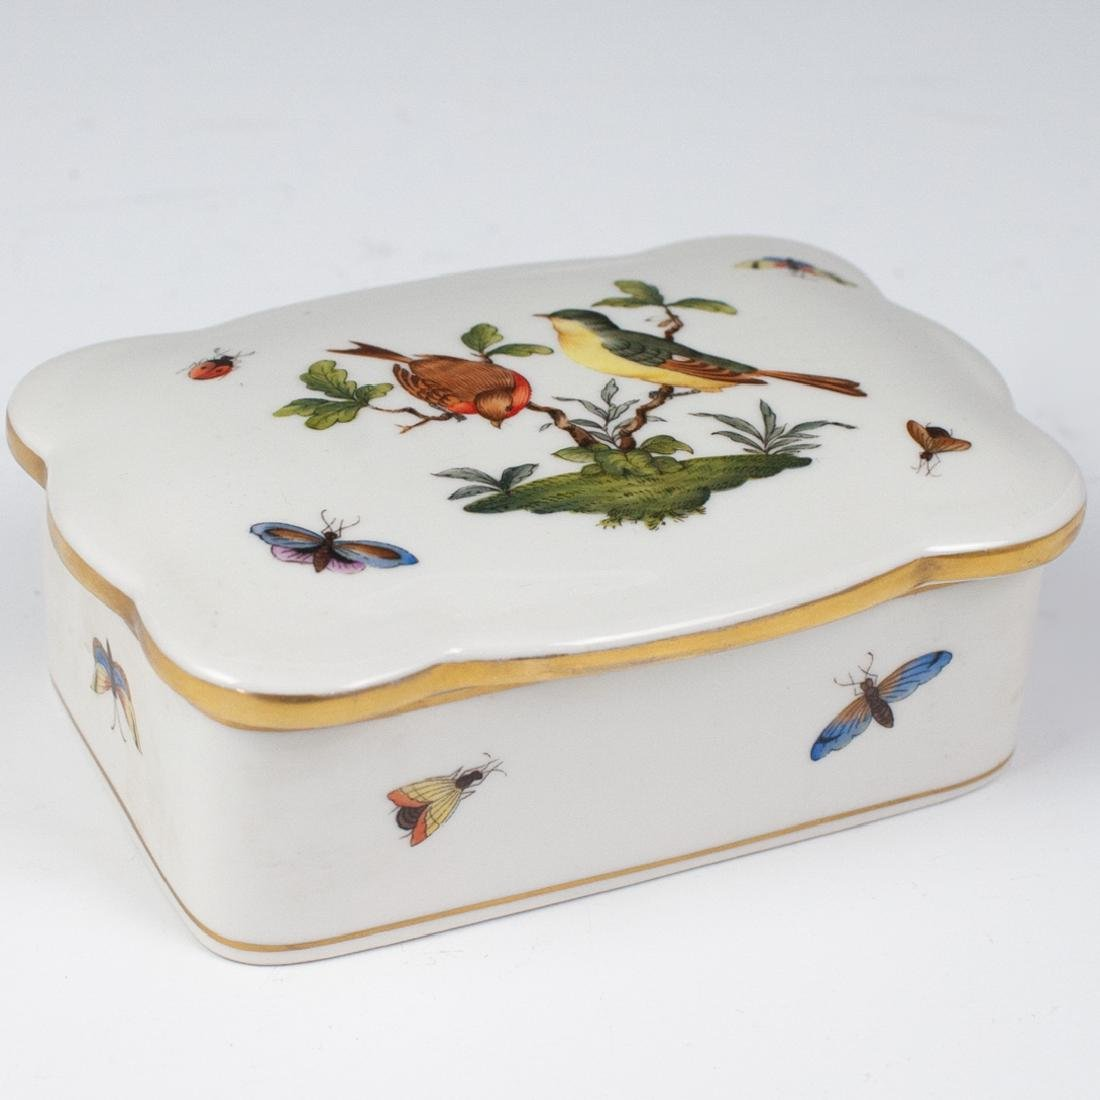 Herend Porcelain Rothschild Trinket Box